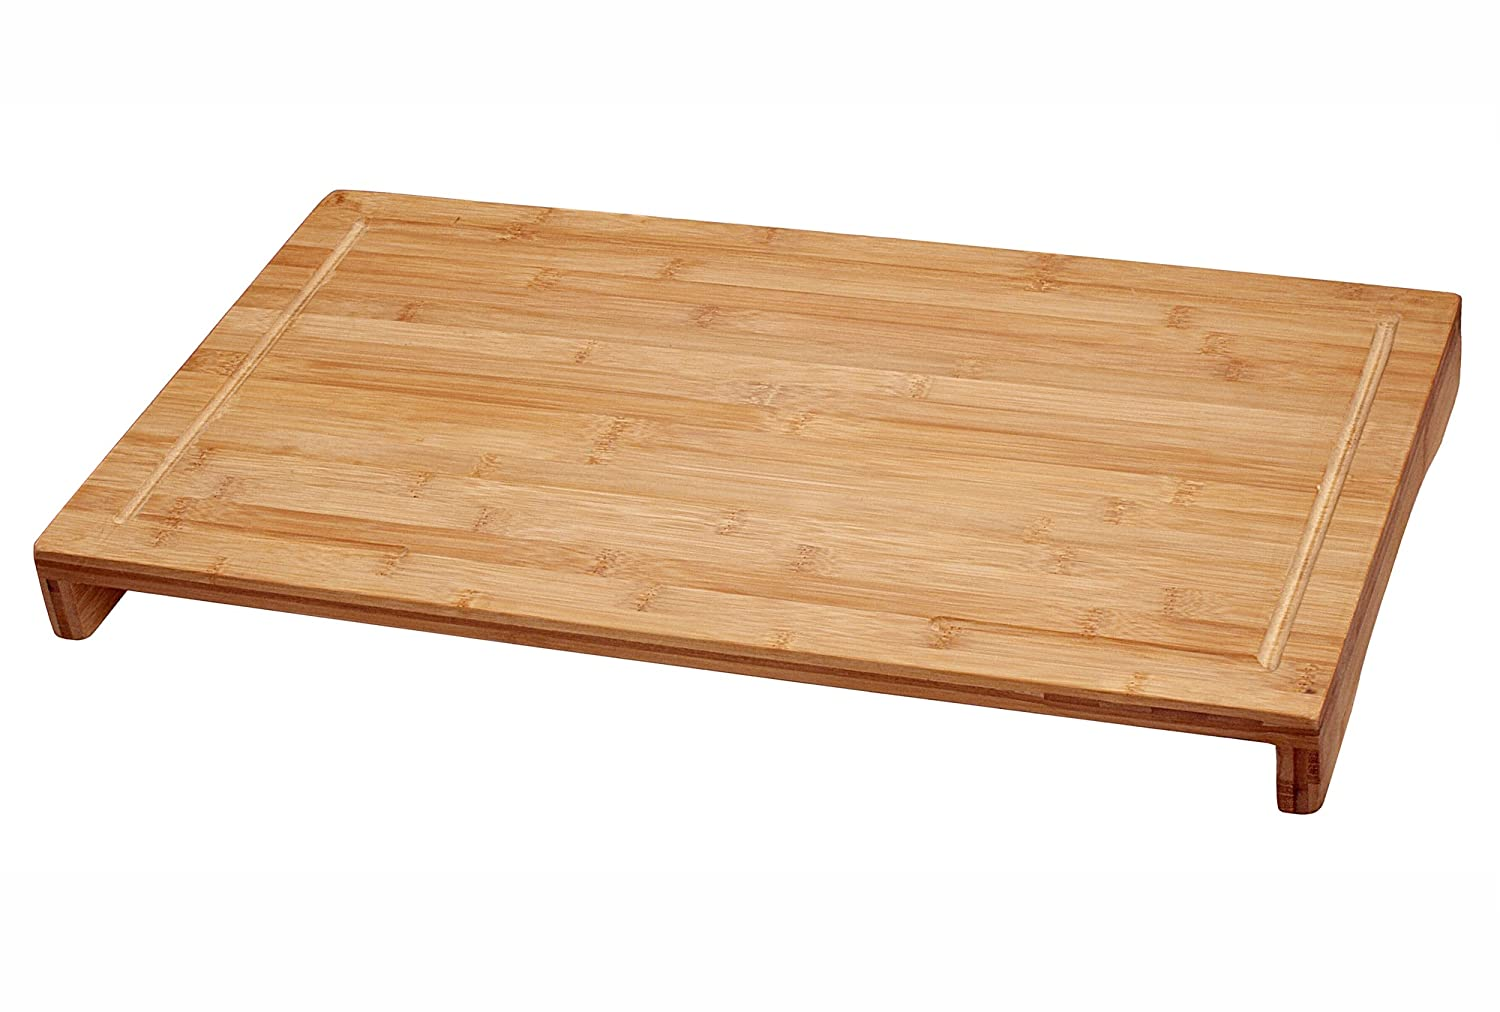 lipper international 8831 bamboo large over the sink stove cutting board new. Black Bedroom Furniture Sets. Home Design Ideas